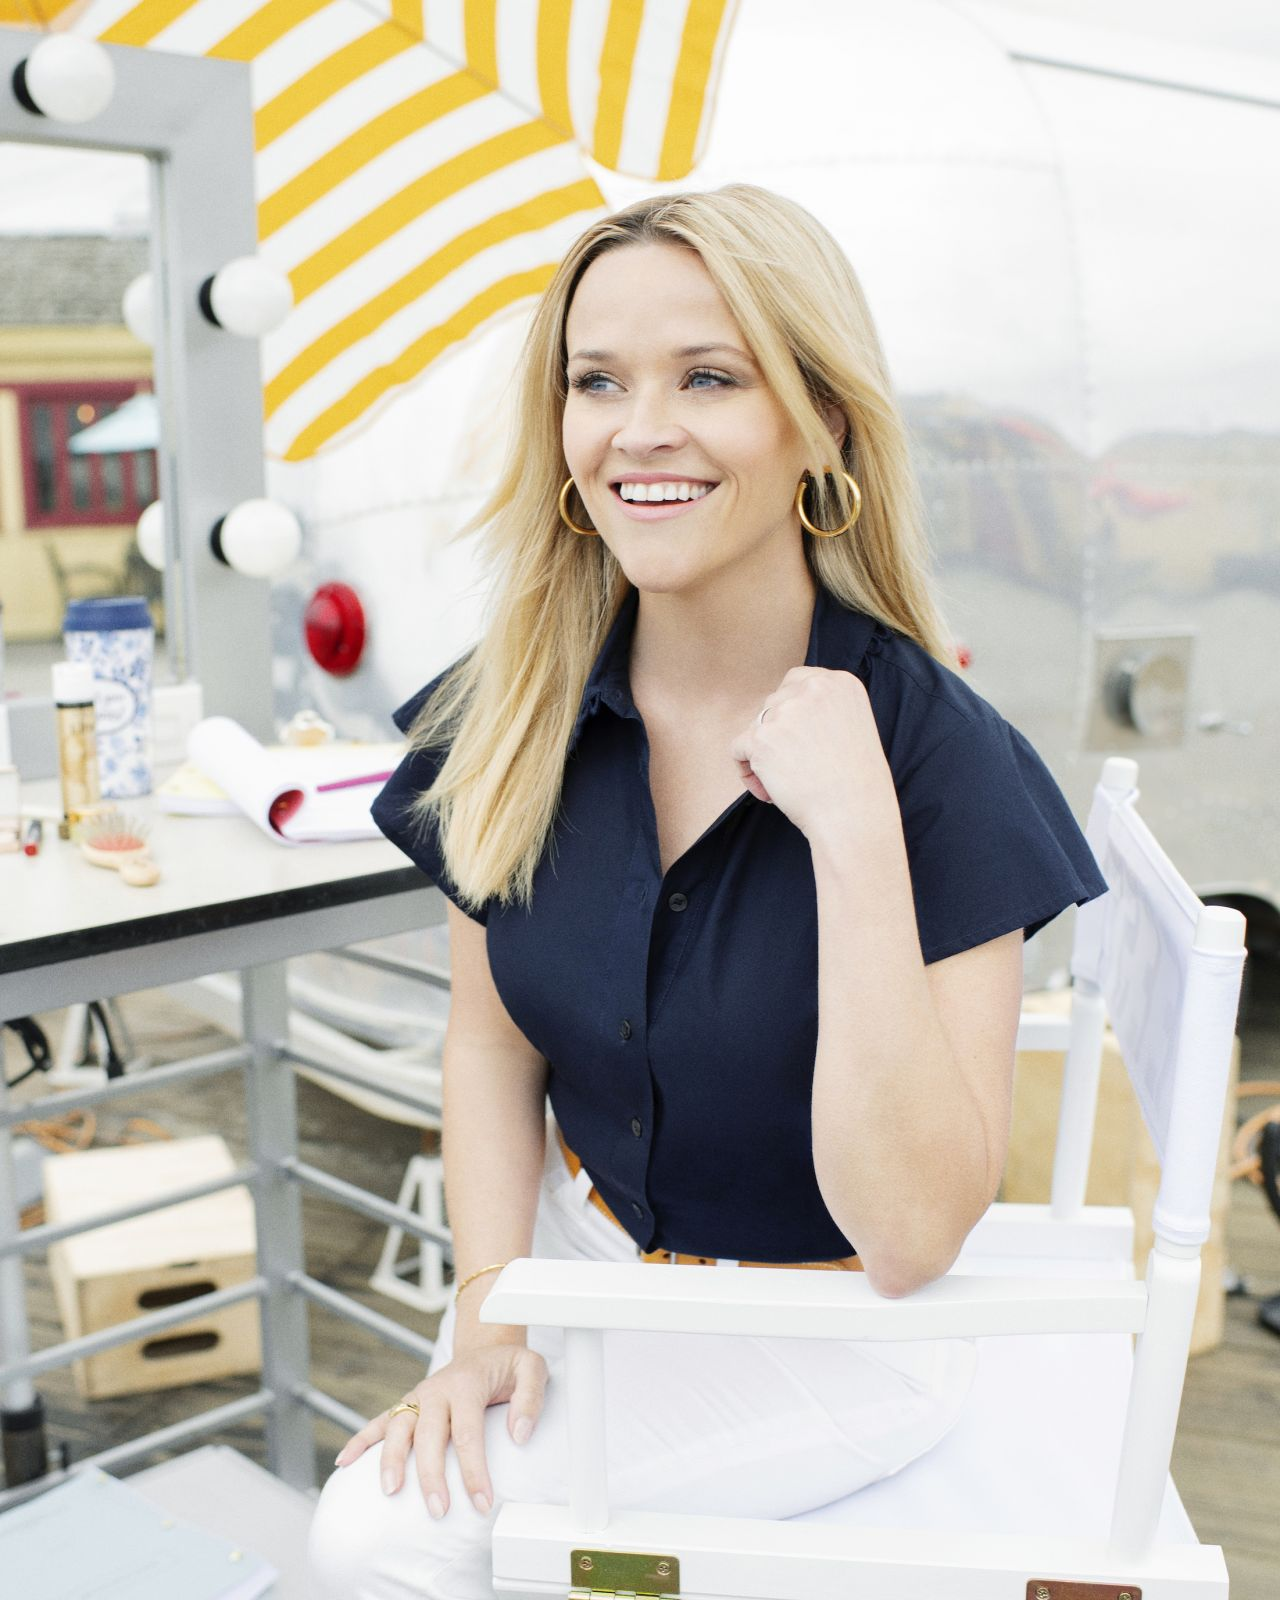 http://celebmafia.com/wp-content/uploads/2018/05/reese-witherspoon-draper-james-clothing-line-summer-campaign-2018-3.jpg